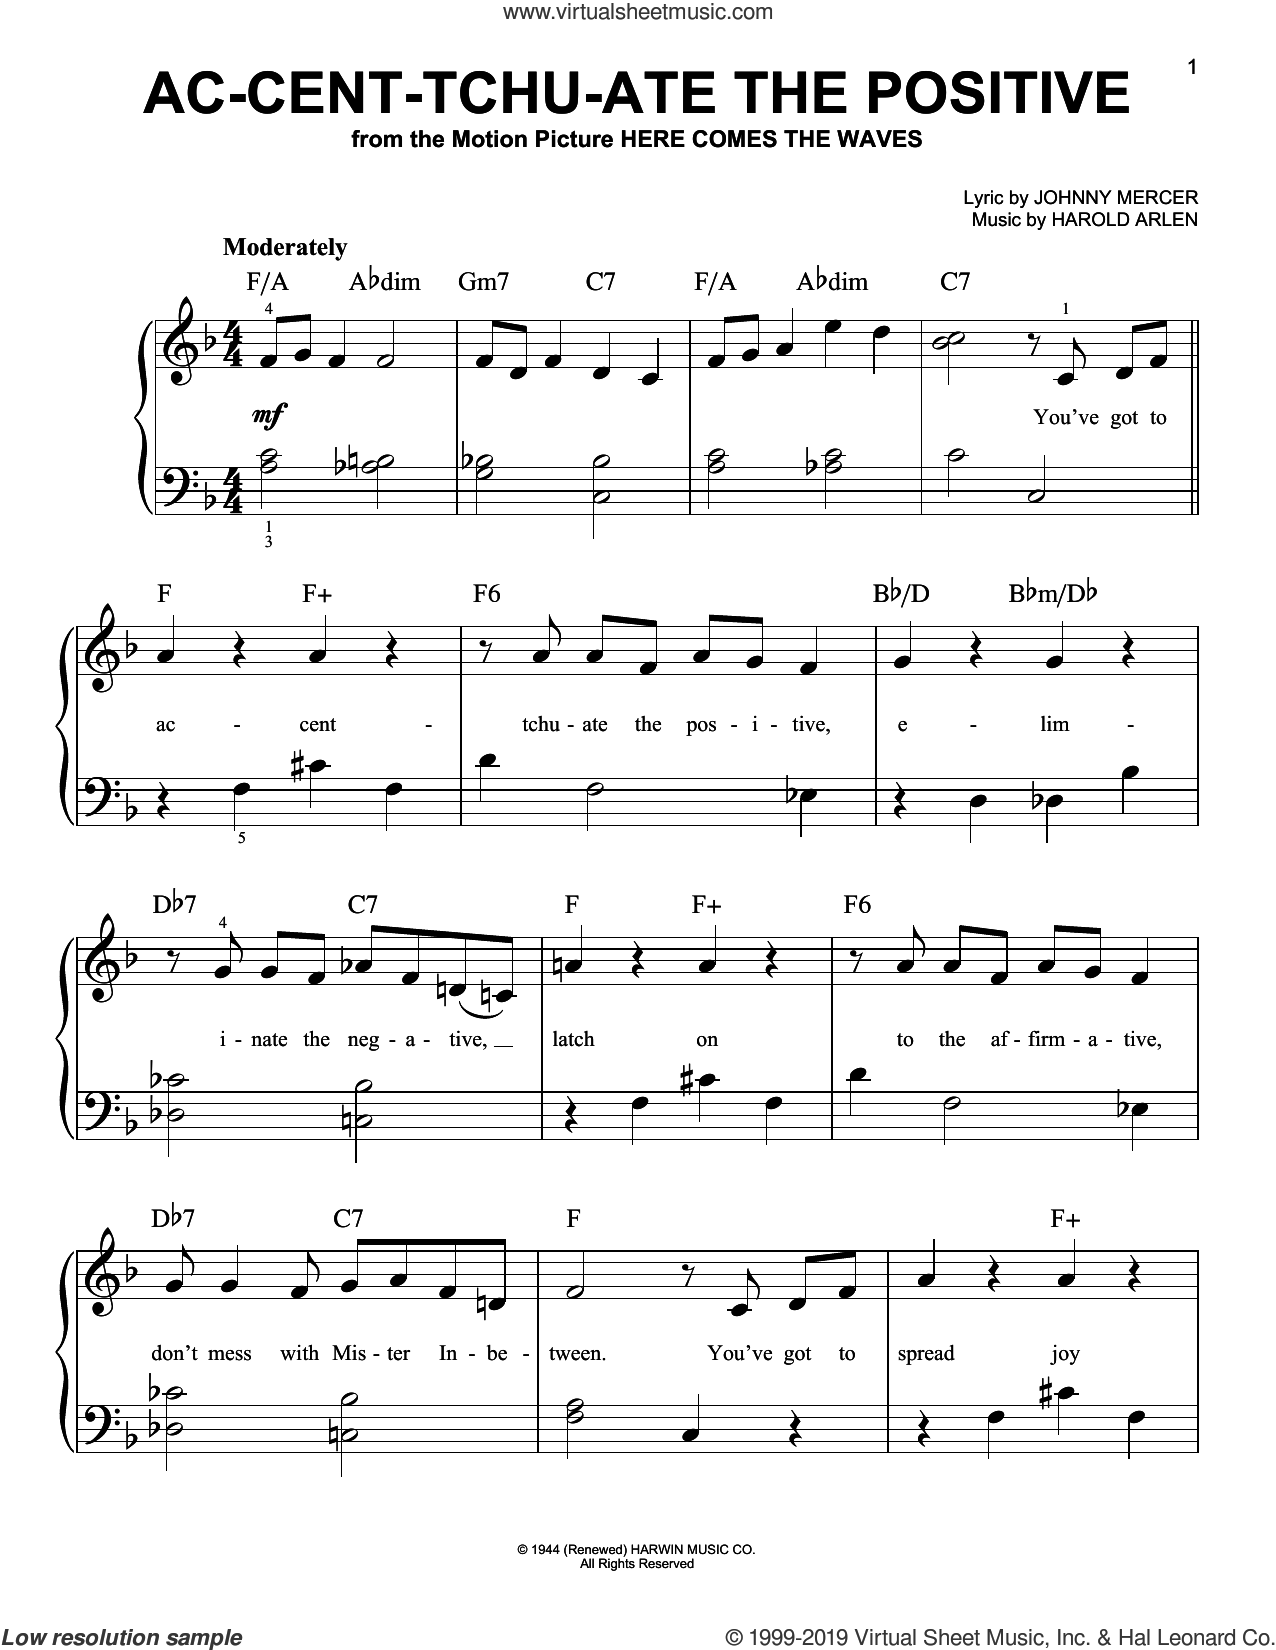 Ac-cent-tchu-ate The Positive sheet music for piano solo by Harold Arlen and Johnny Mercer, easy skill level